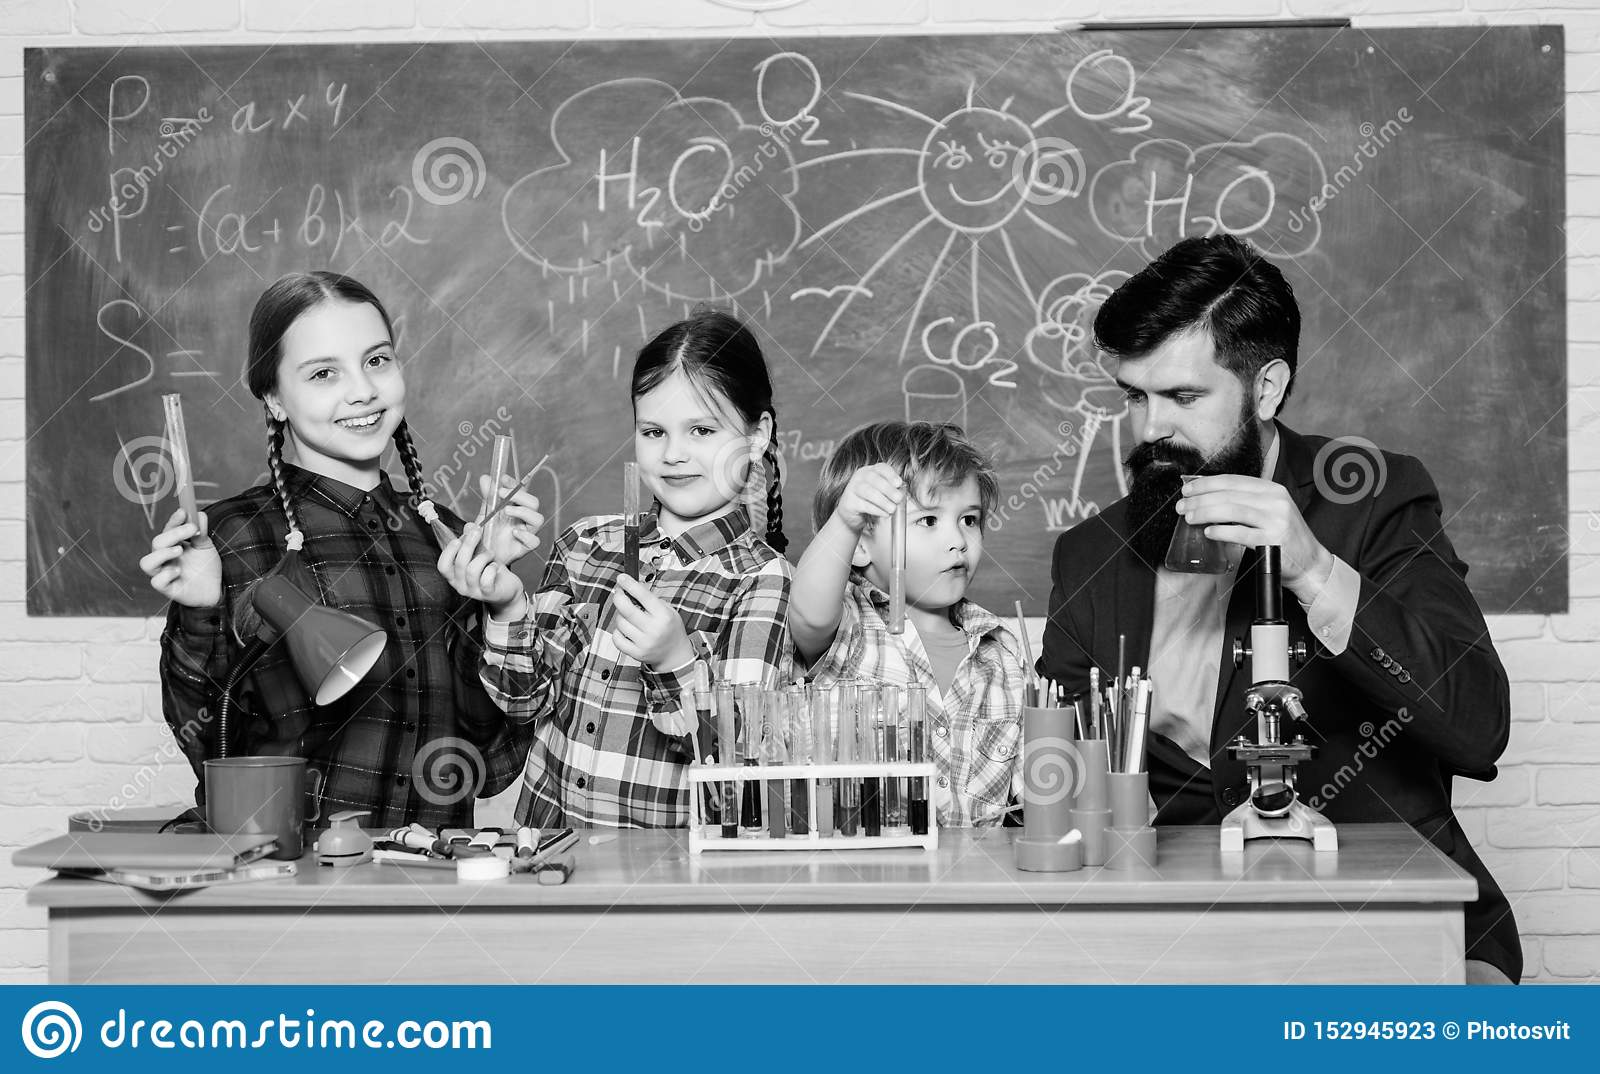 Chemistry themed club. Group interaction and communication. Interests and topic club. Share interests hobbies talents